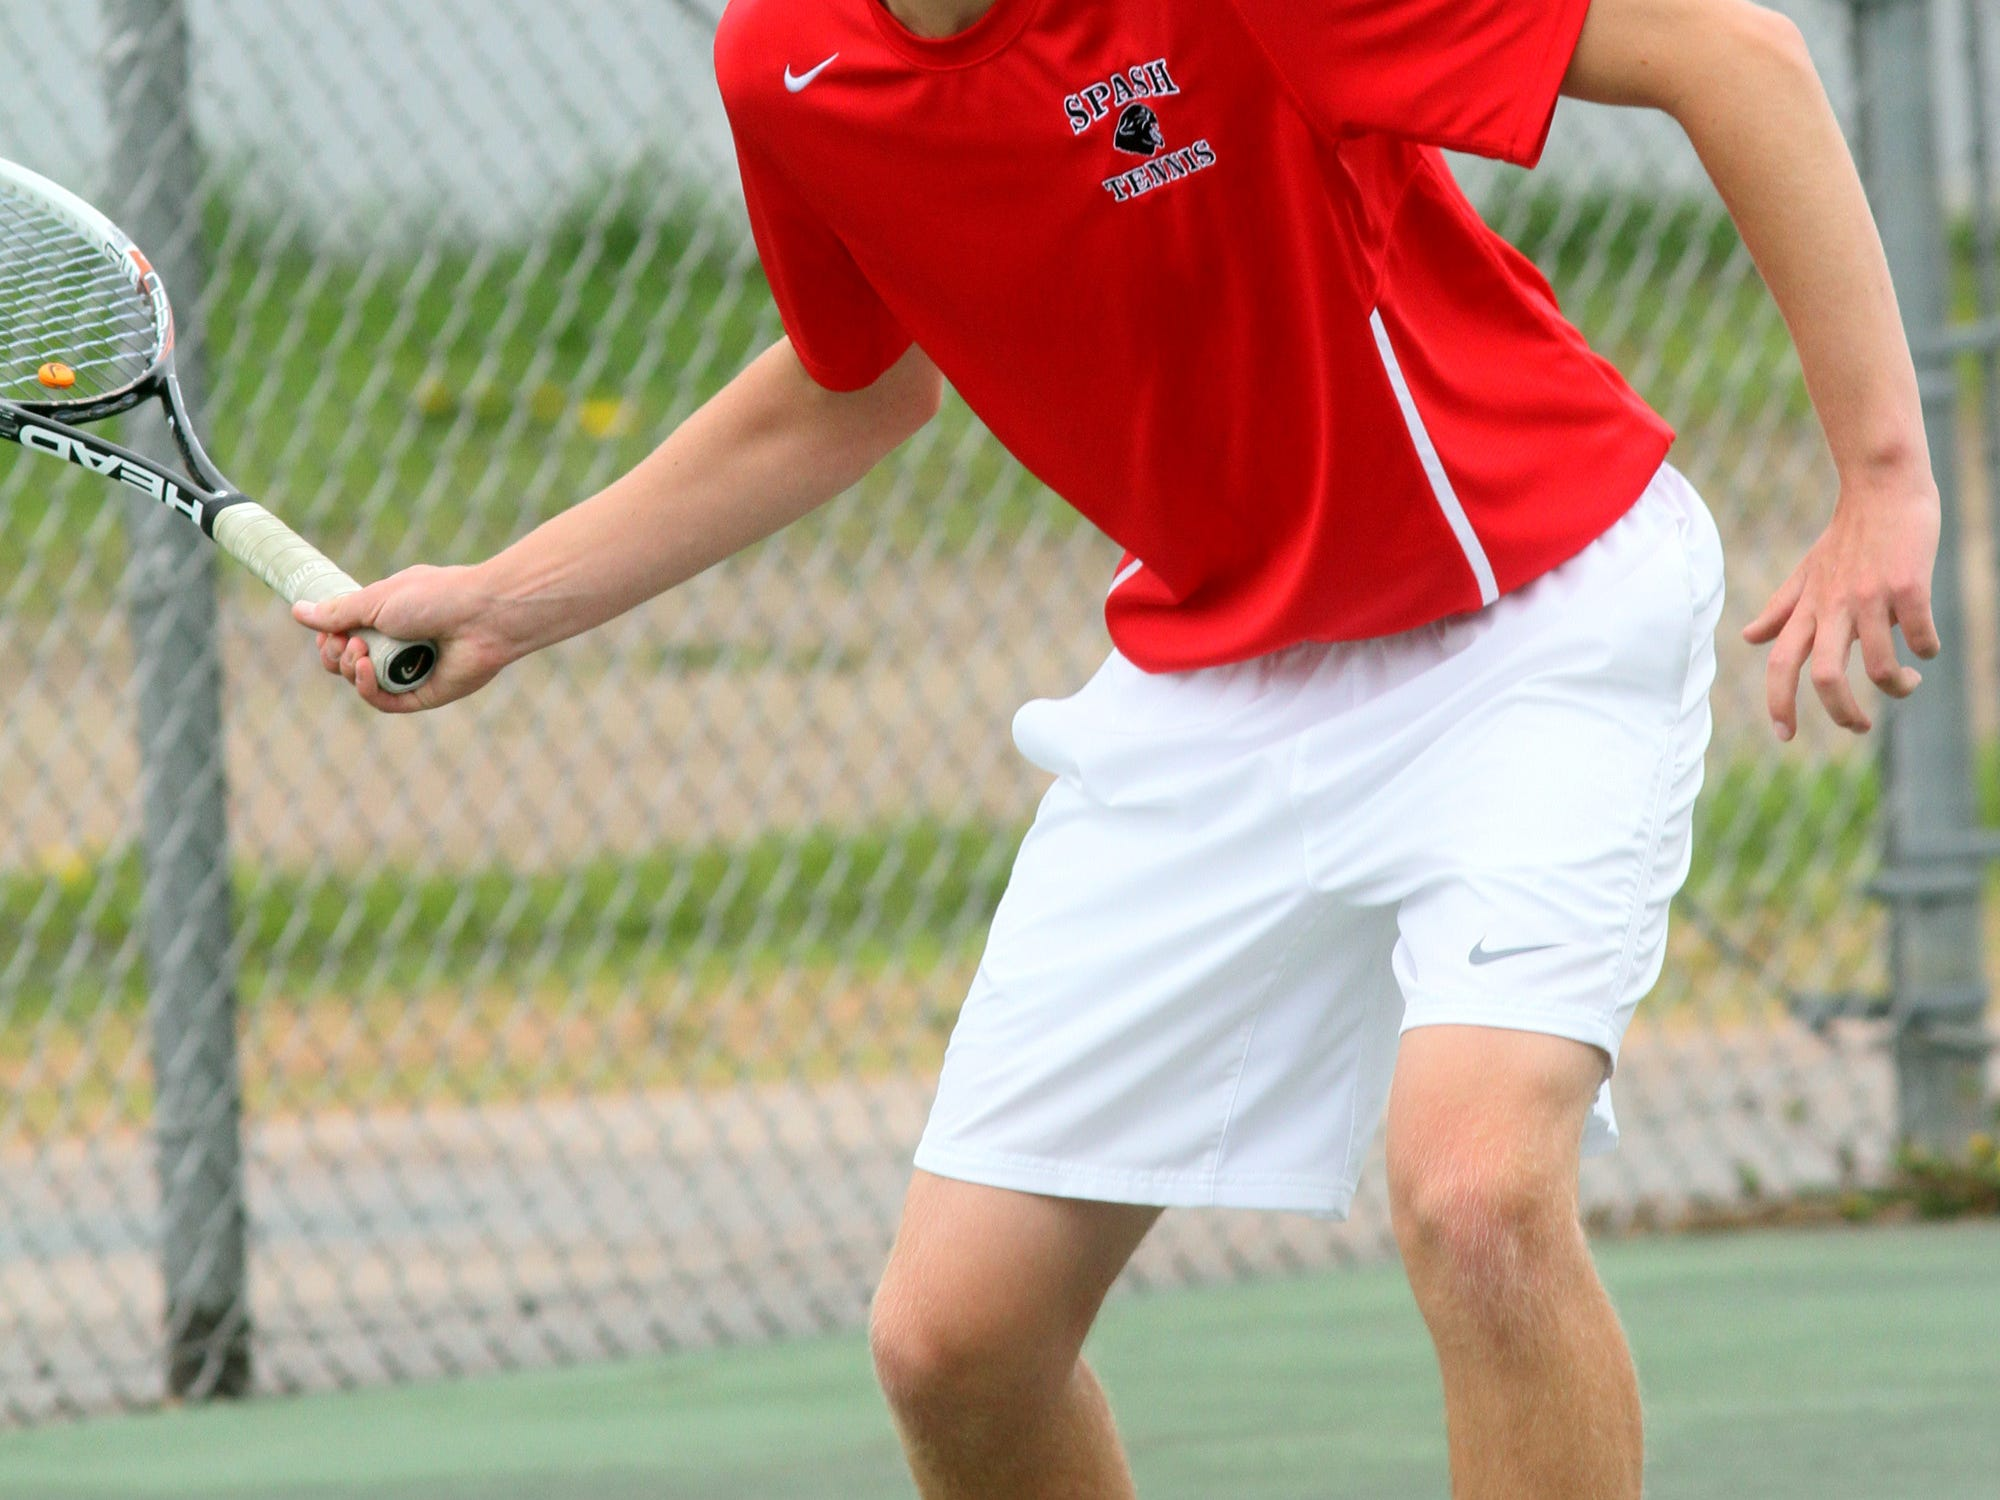 Senior Blaine Bancker has taken over the No. 1 singles spot in the Stevens Point Area Senior High tennis lineup and the Panthers have barely skipped a beat through an unbeaten Wisconsin Valley Conference dual meet season.